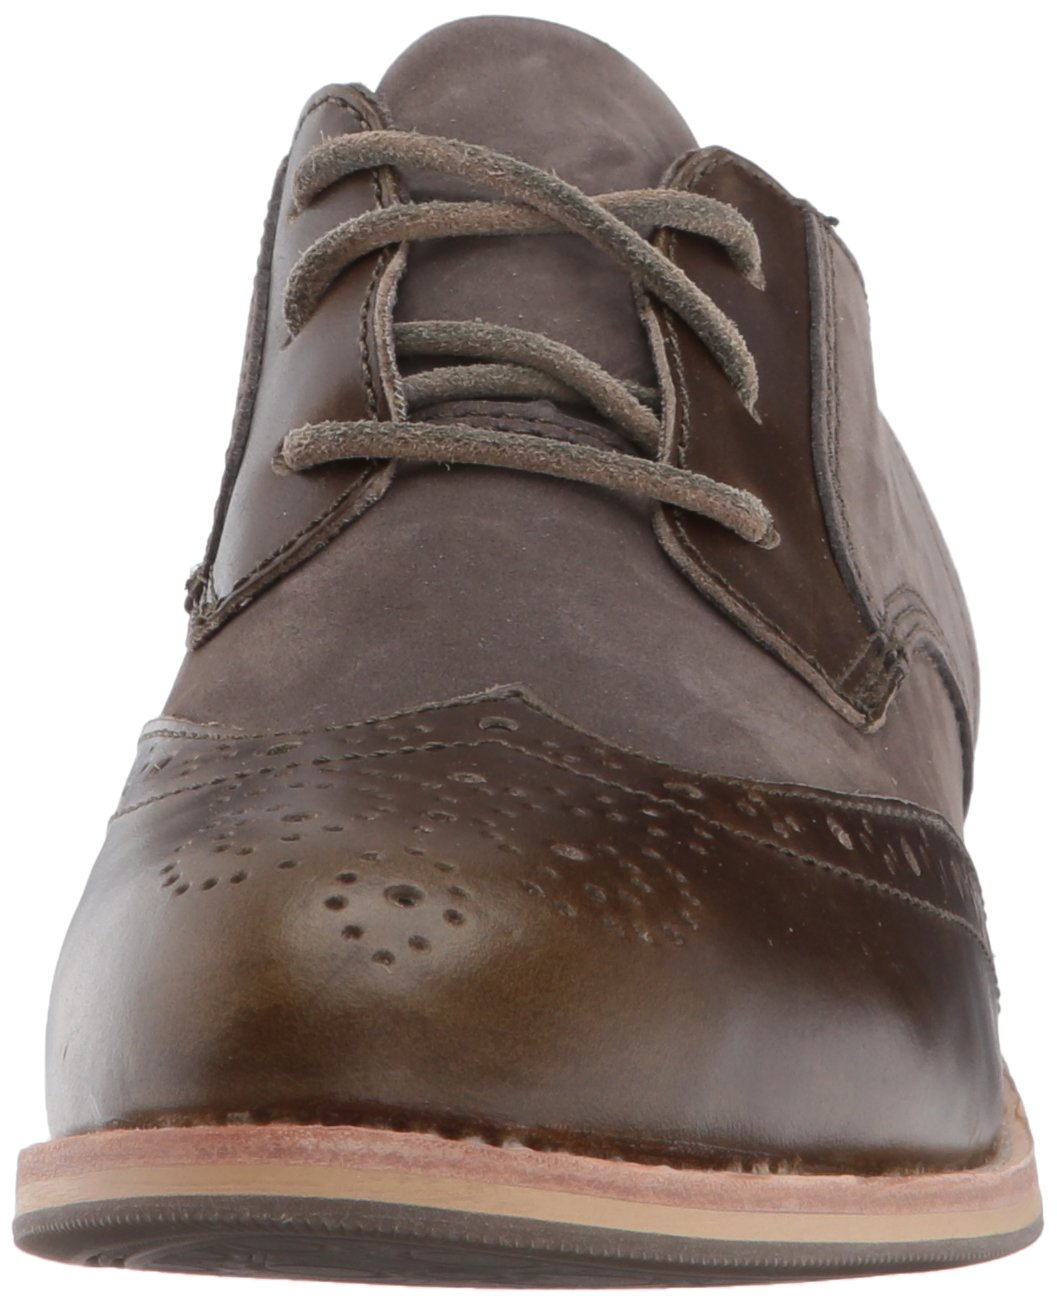 Caterpillar Women's Reegan II Lace up Leather Oxford, Olive, 5.5 Medium US by Caterpillar (Image #4)